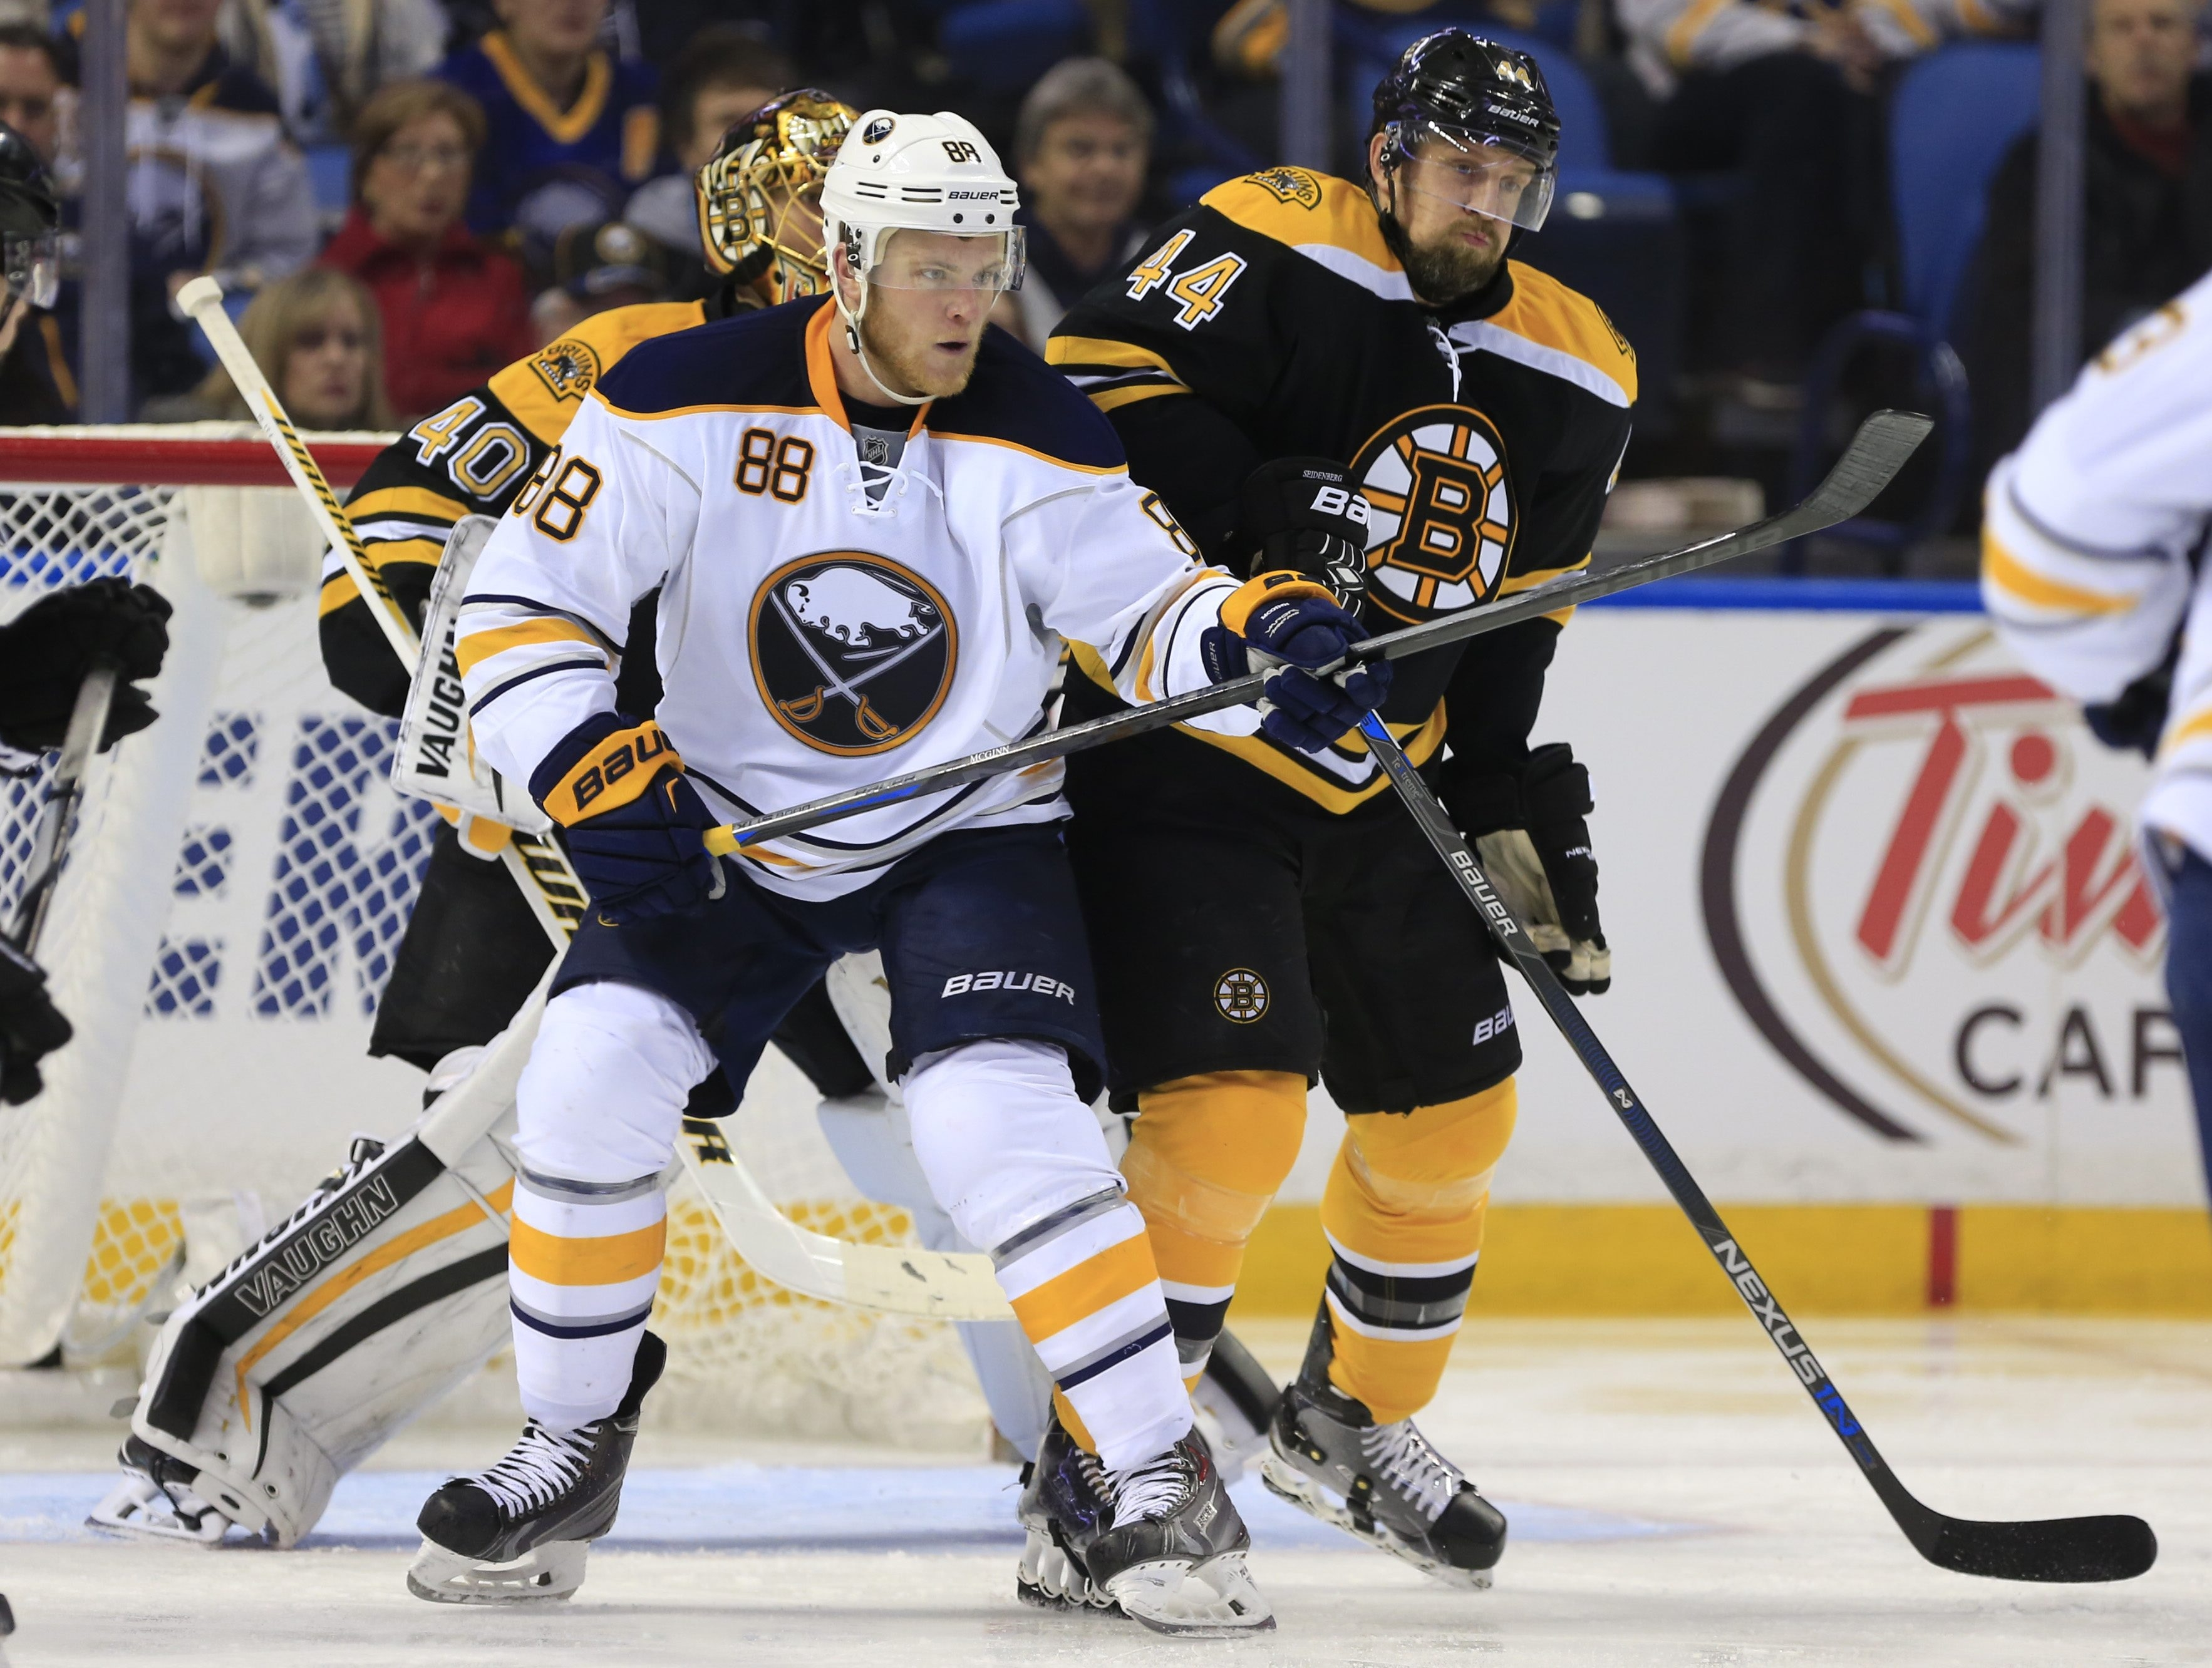 Jamie McGinn, who has had a solid season for the Sabres, tips the puck past Boston's Dennis Seidenberg in the third period. (Harry Scull Jr./Buffalo News)